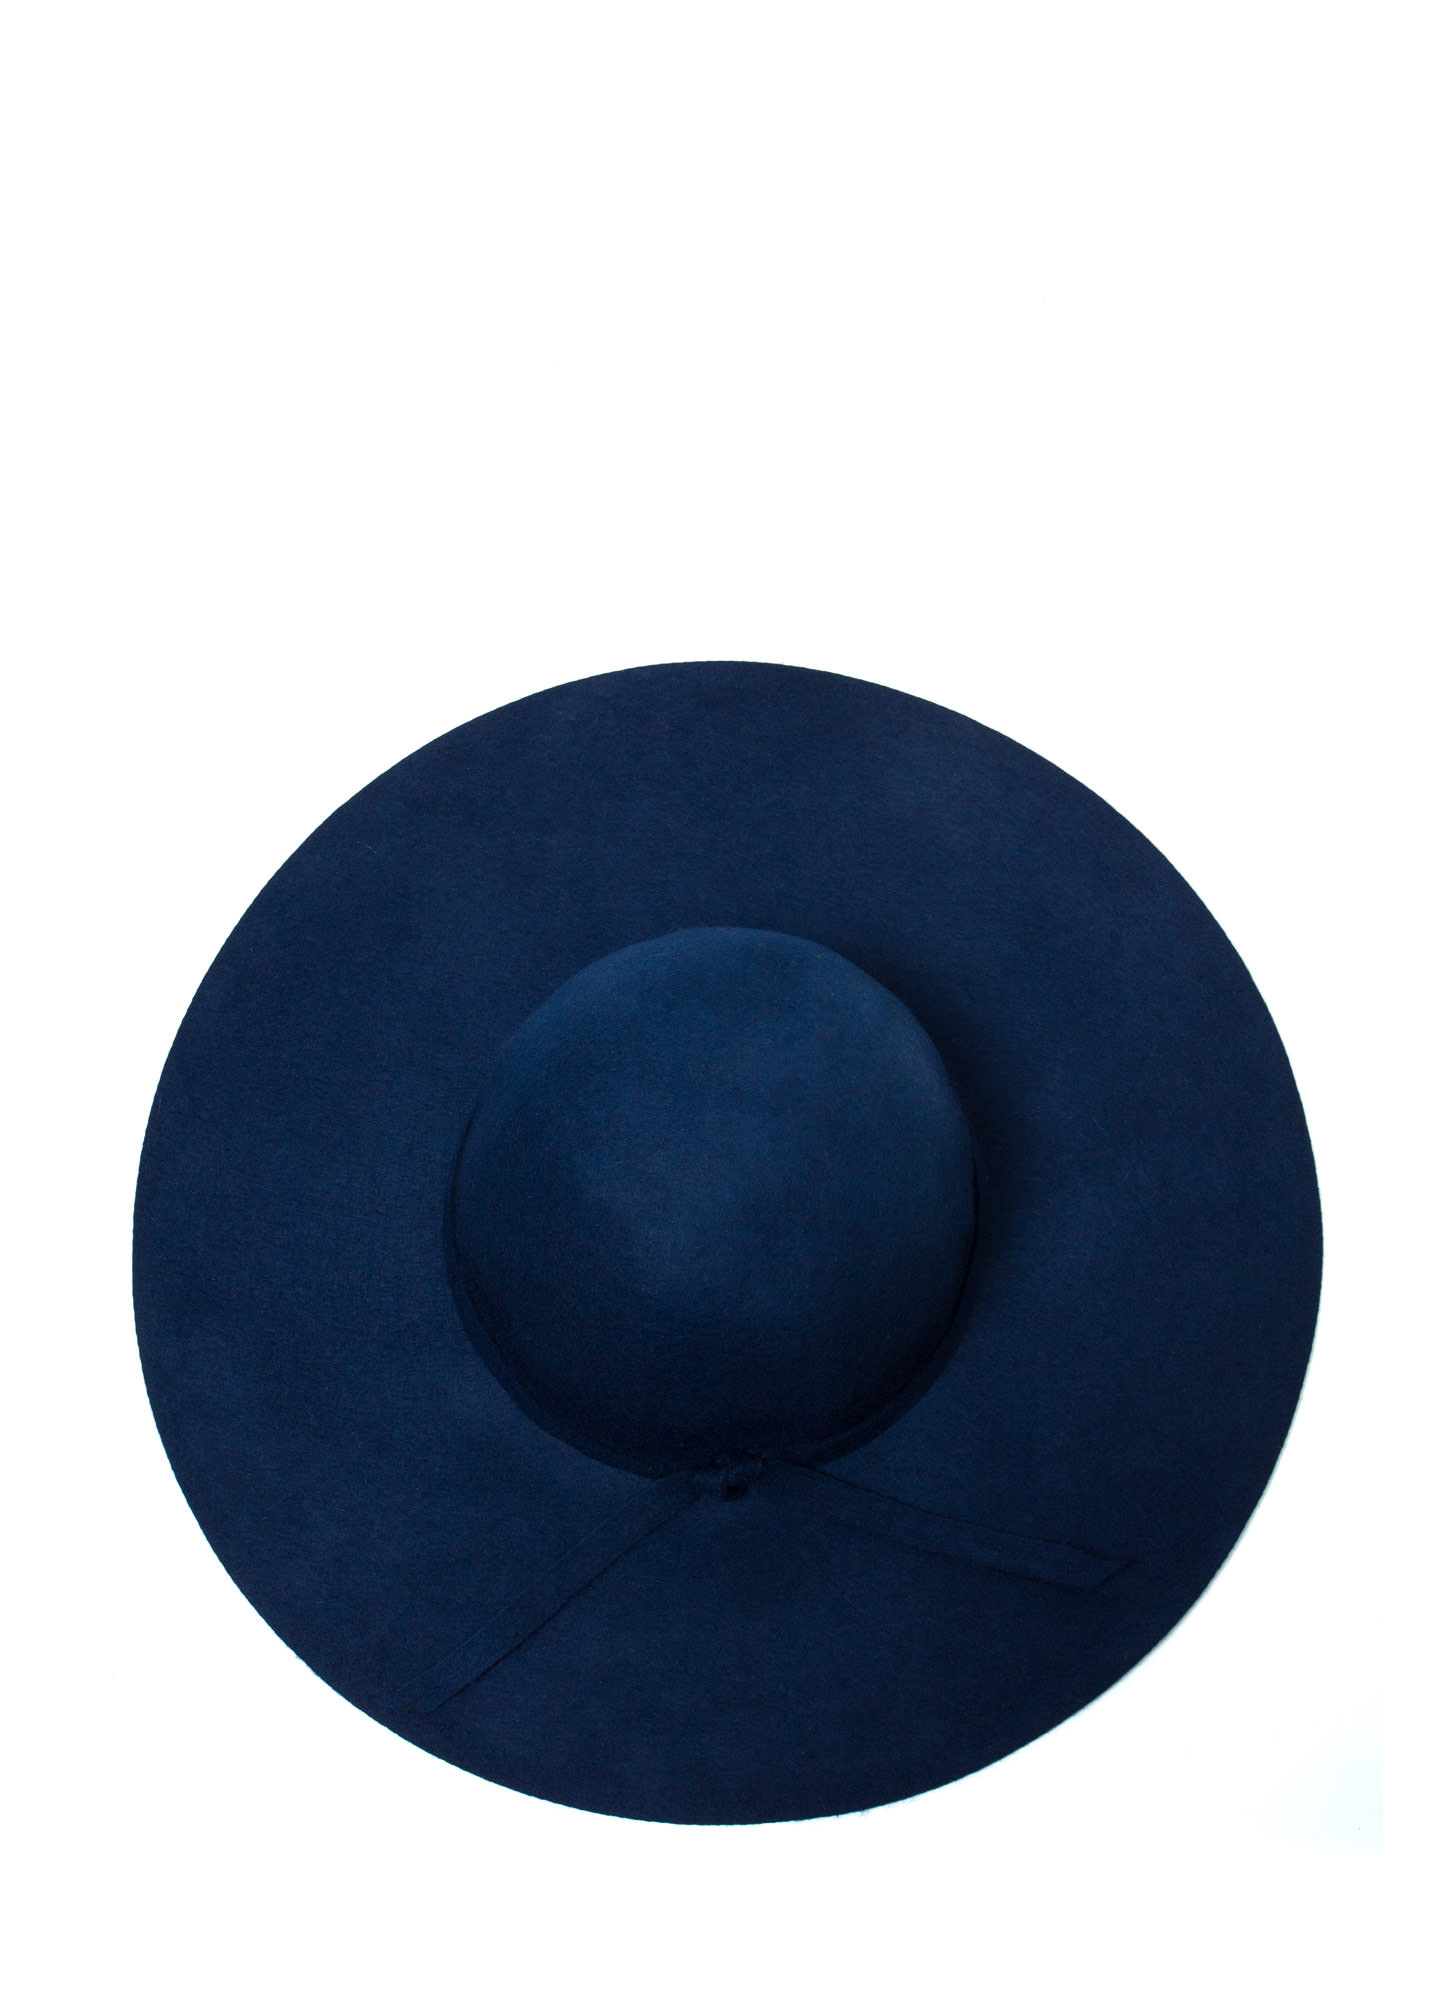 Wide Brim Wool Hat BLUE (Final Sale)